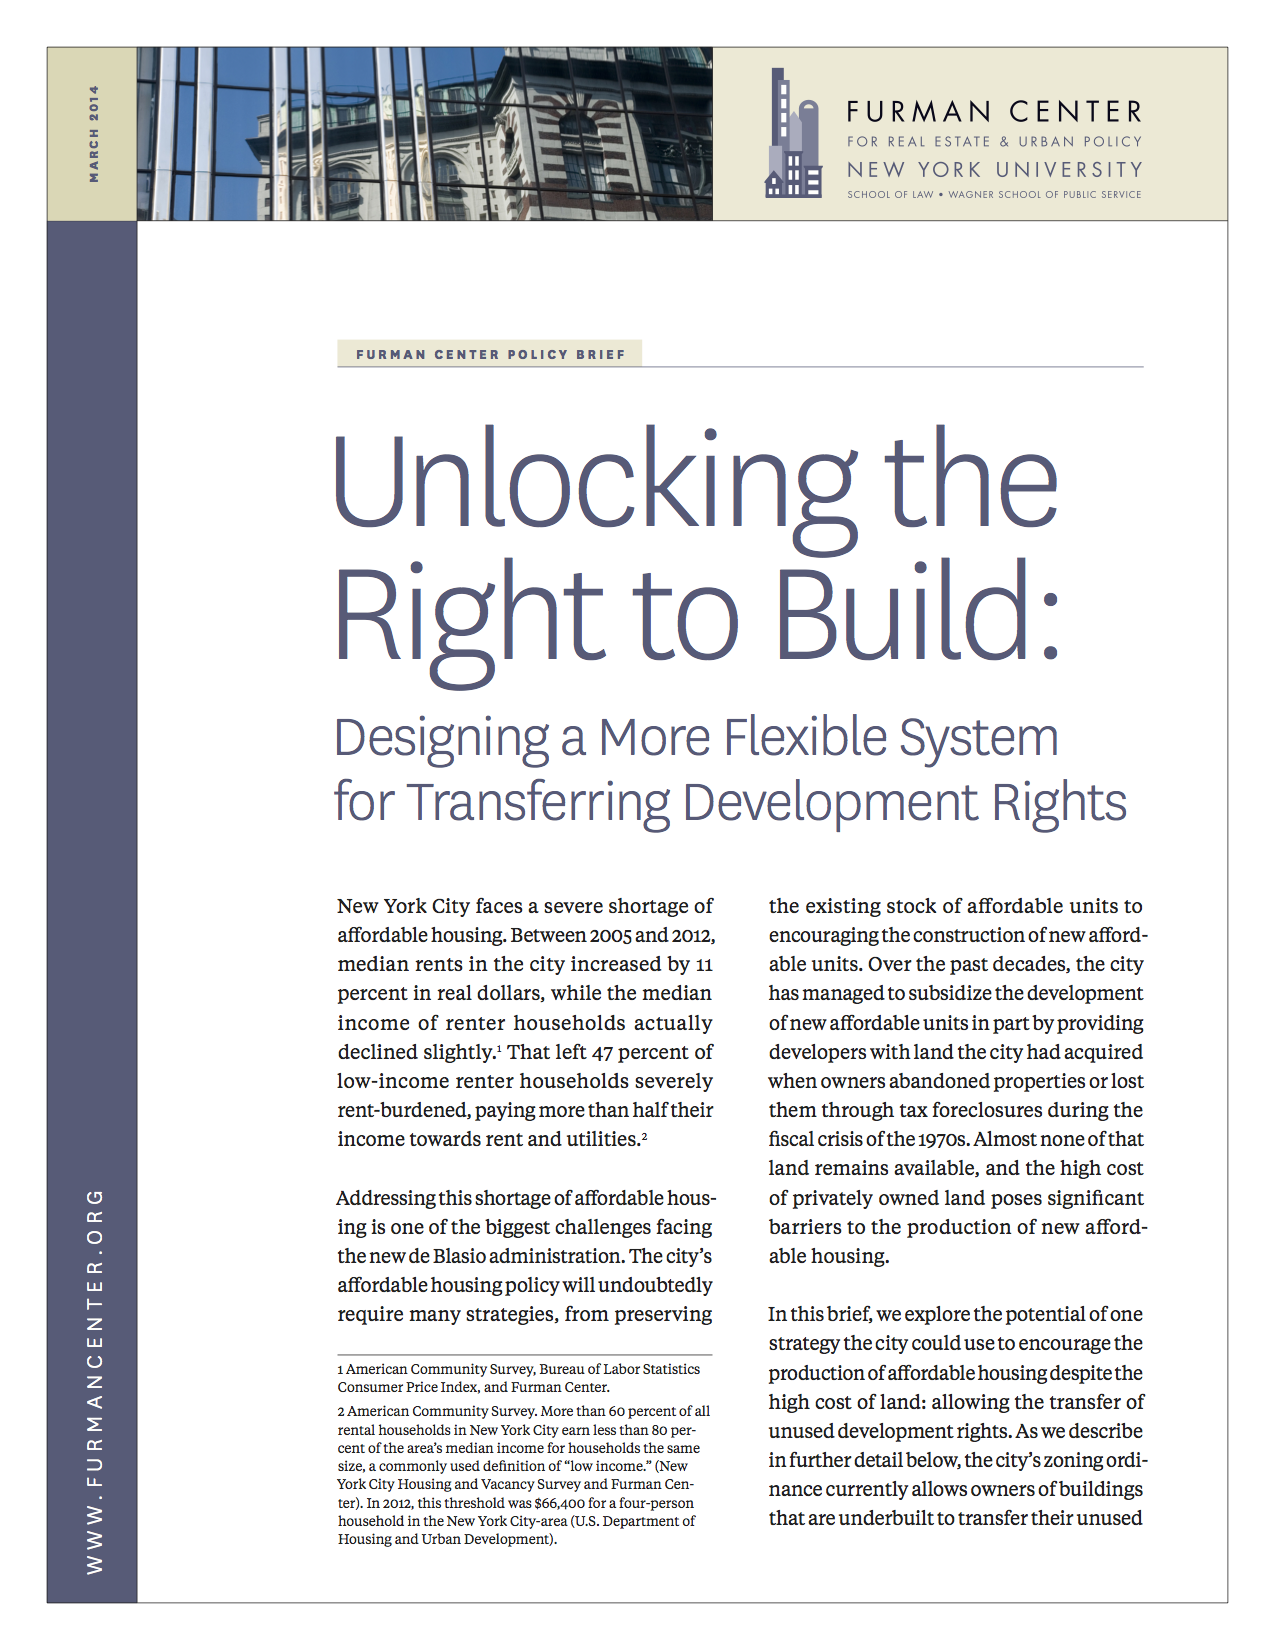 2014-NYU-Furman-Center-Unlocking-the-Right-to-Build.png